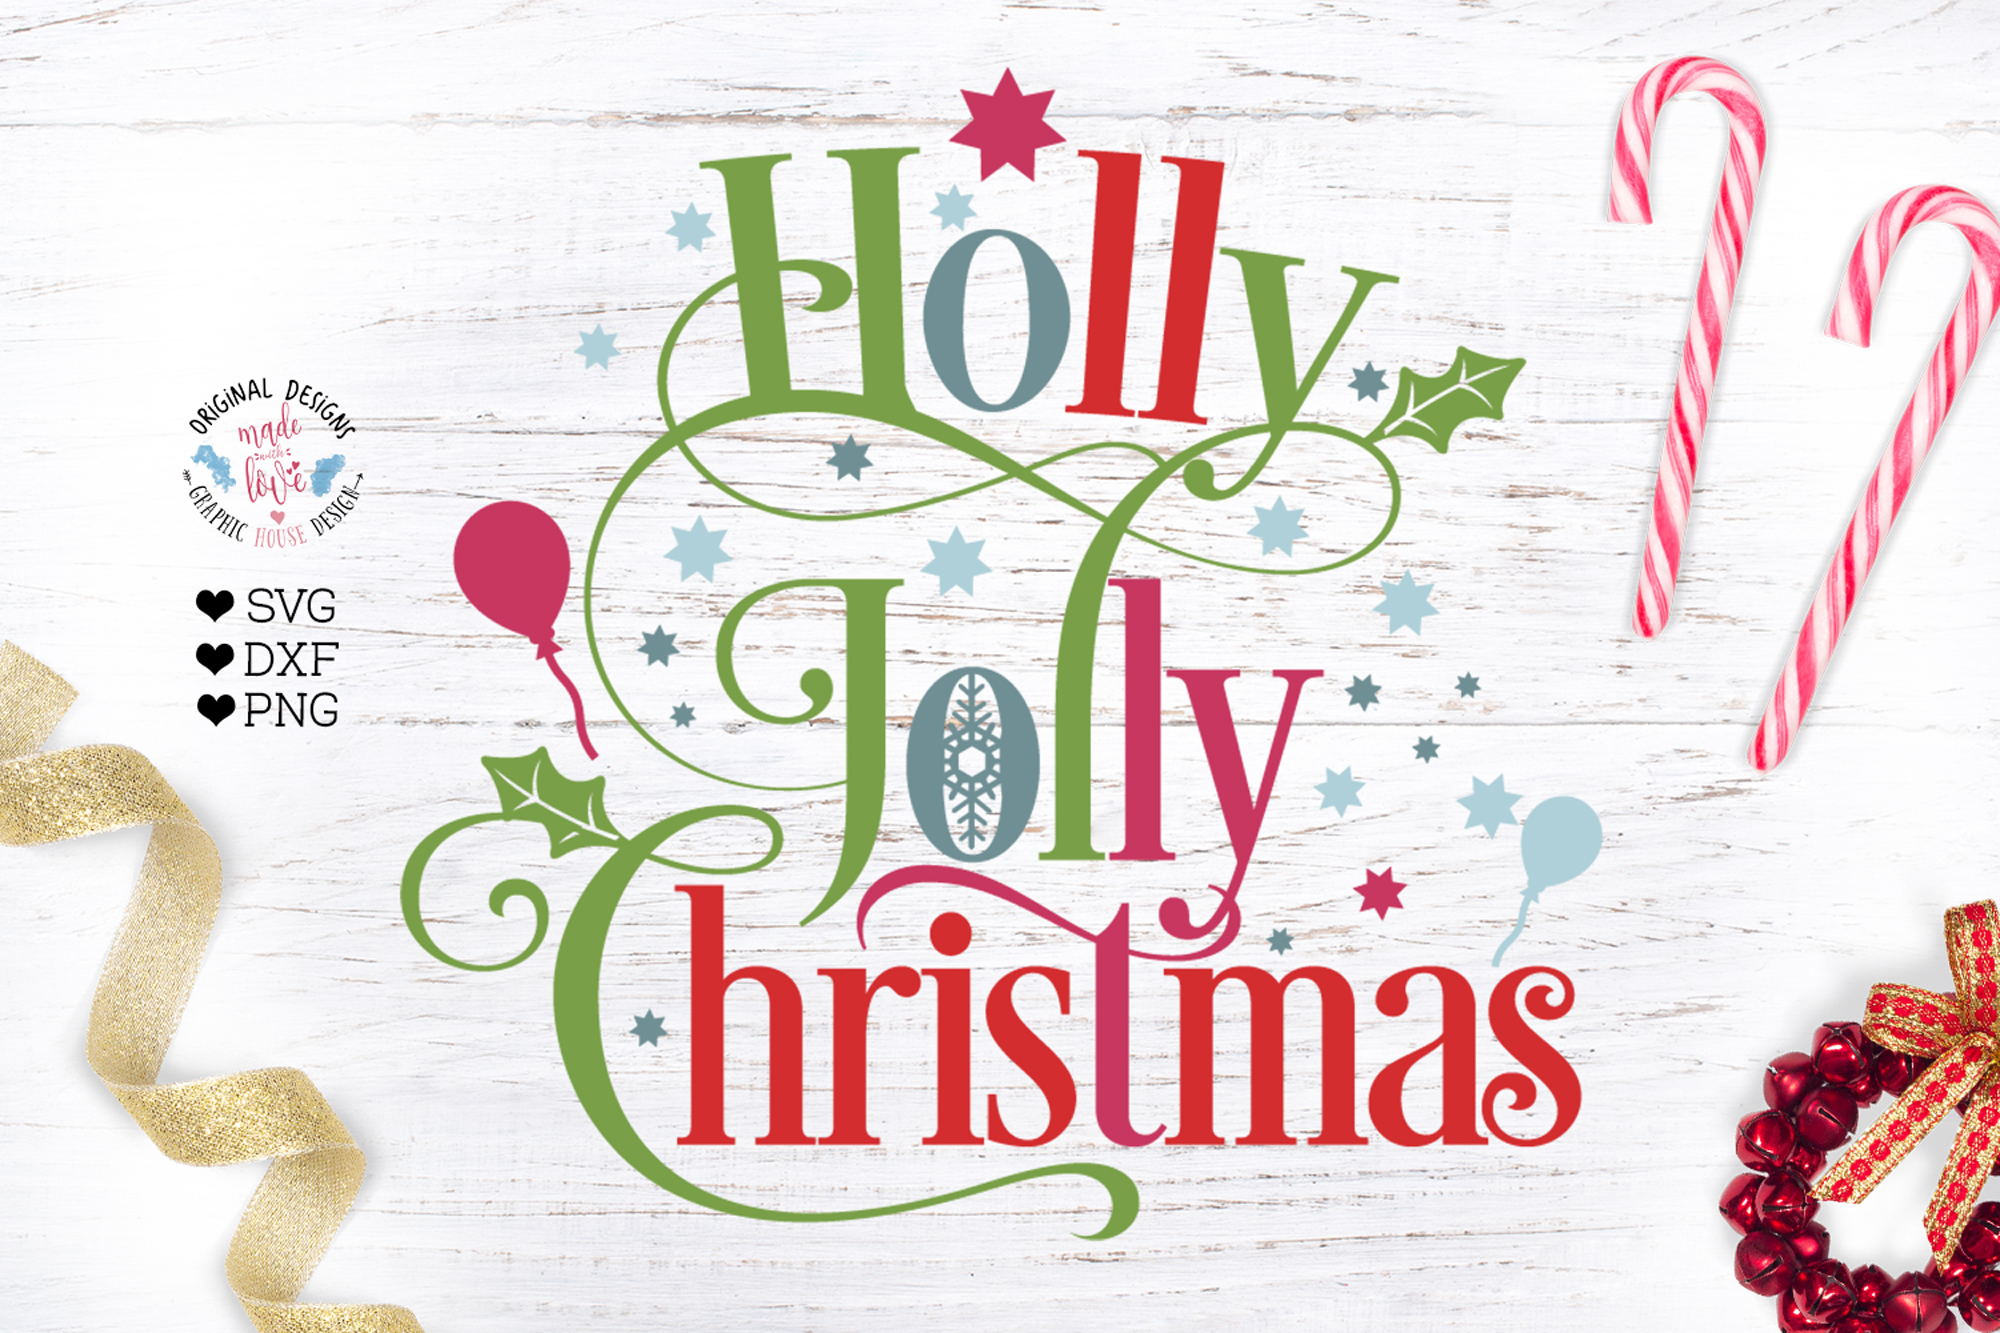 Holly Jolly Christmas Cut File Graphic By Graphichousedesign